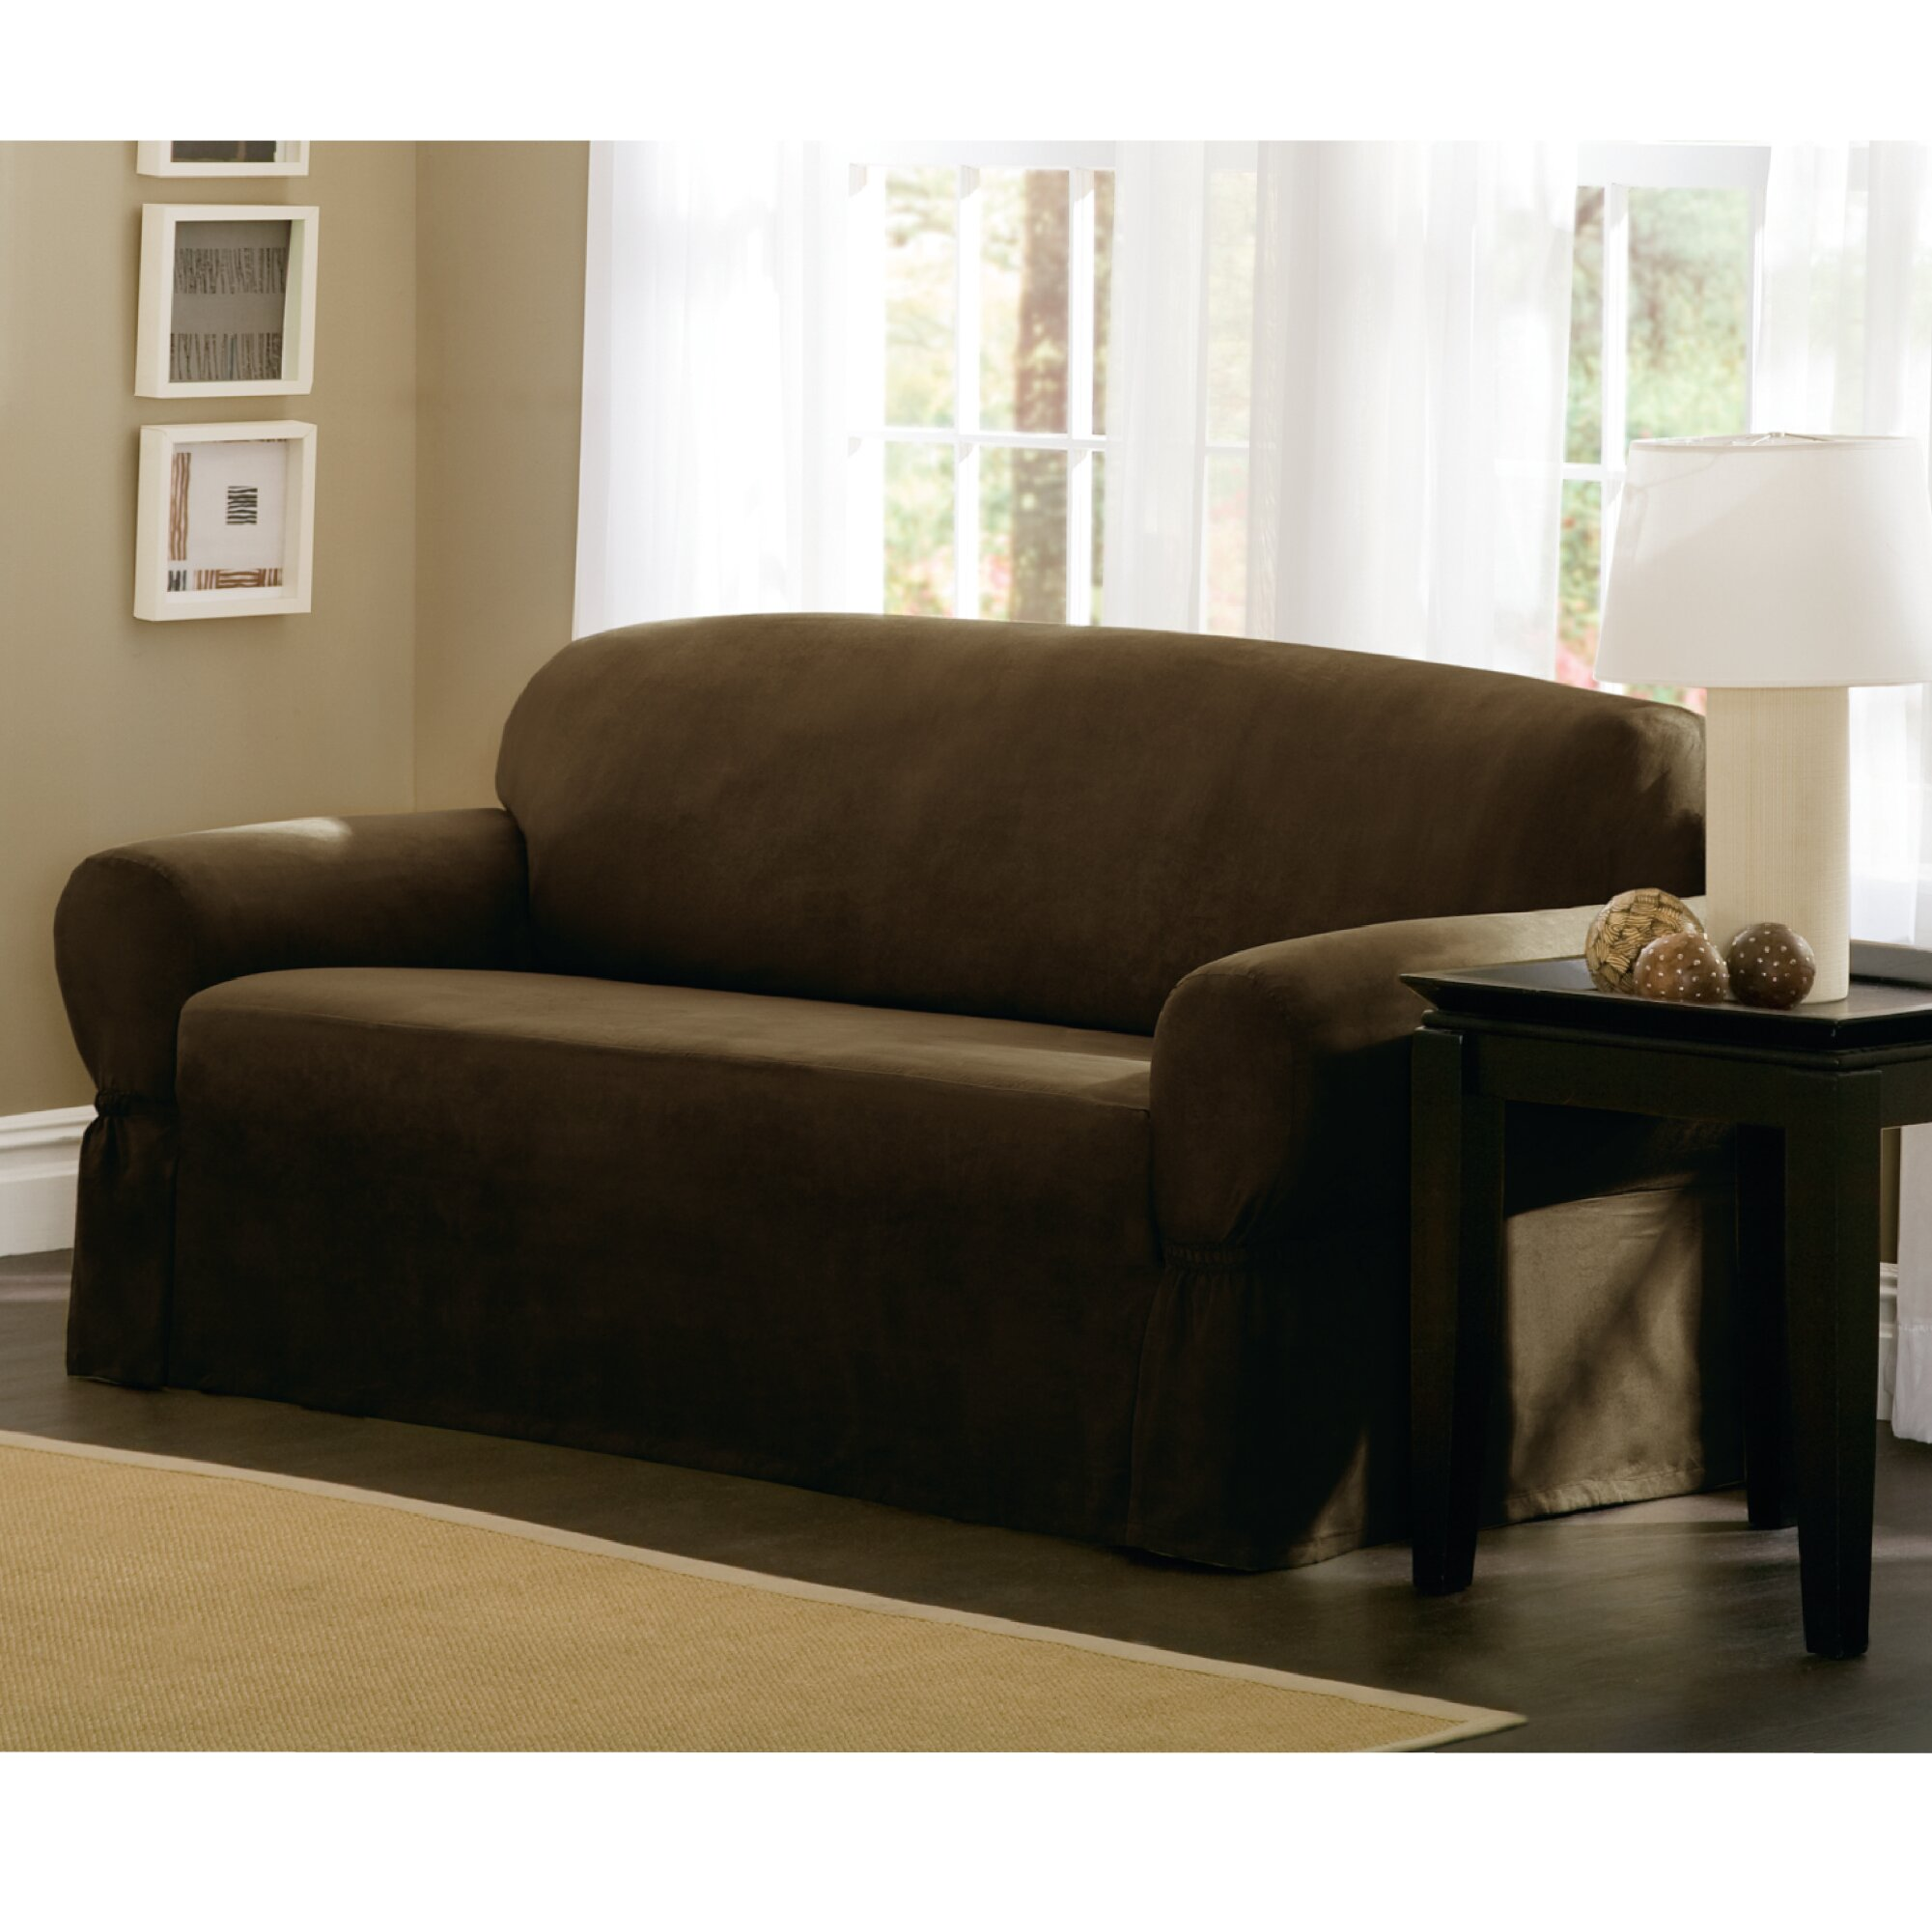 maytex t cushion loveseat sofa slipcover reviews. Black Bedroom Furniture Sets. Home Design Ideas